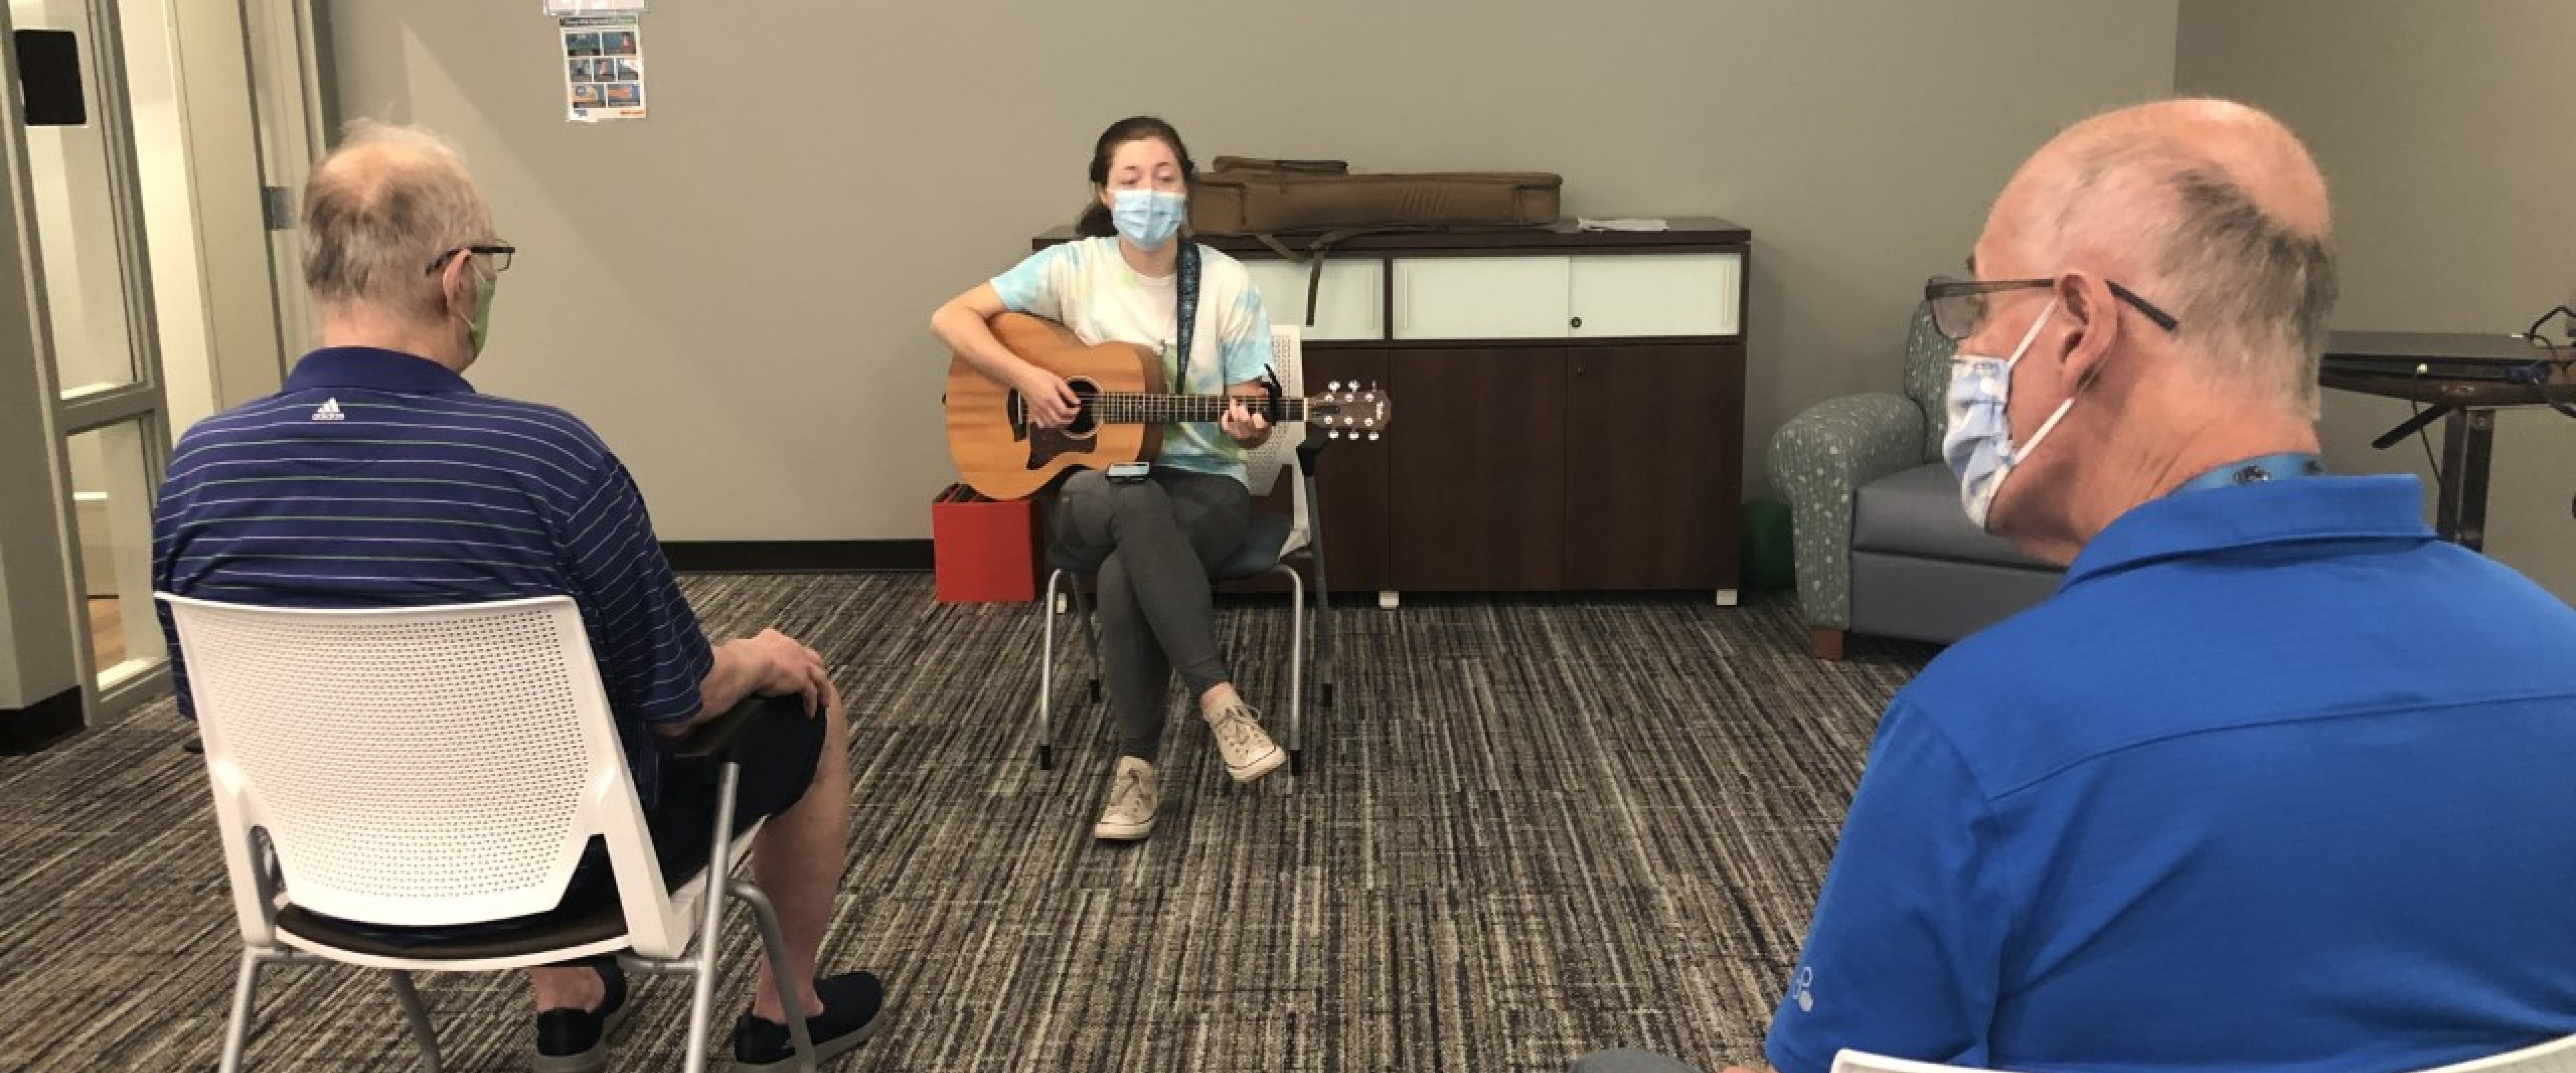 Music therapy student and participants